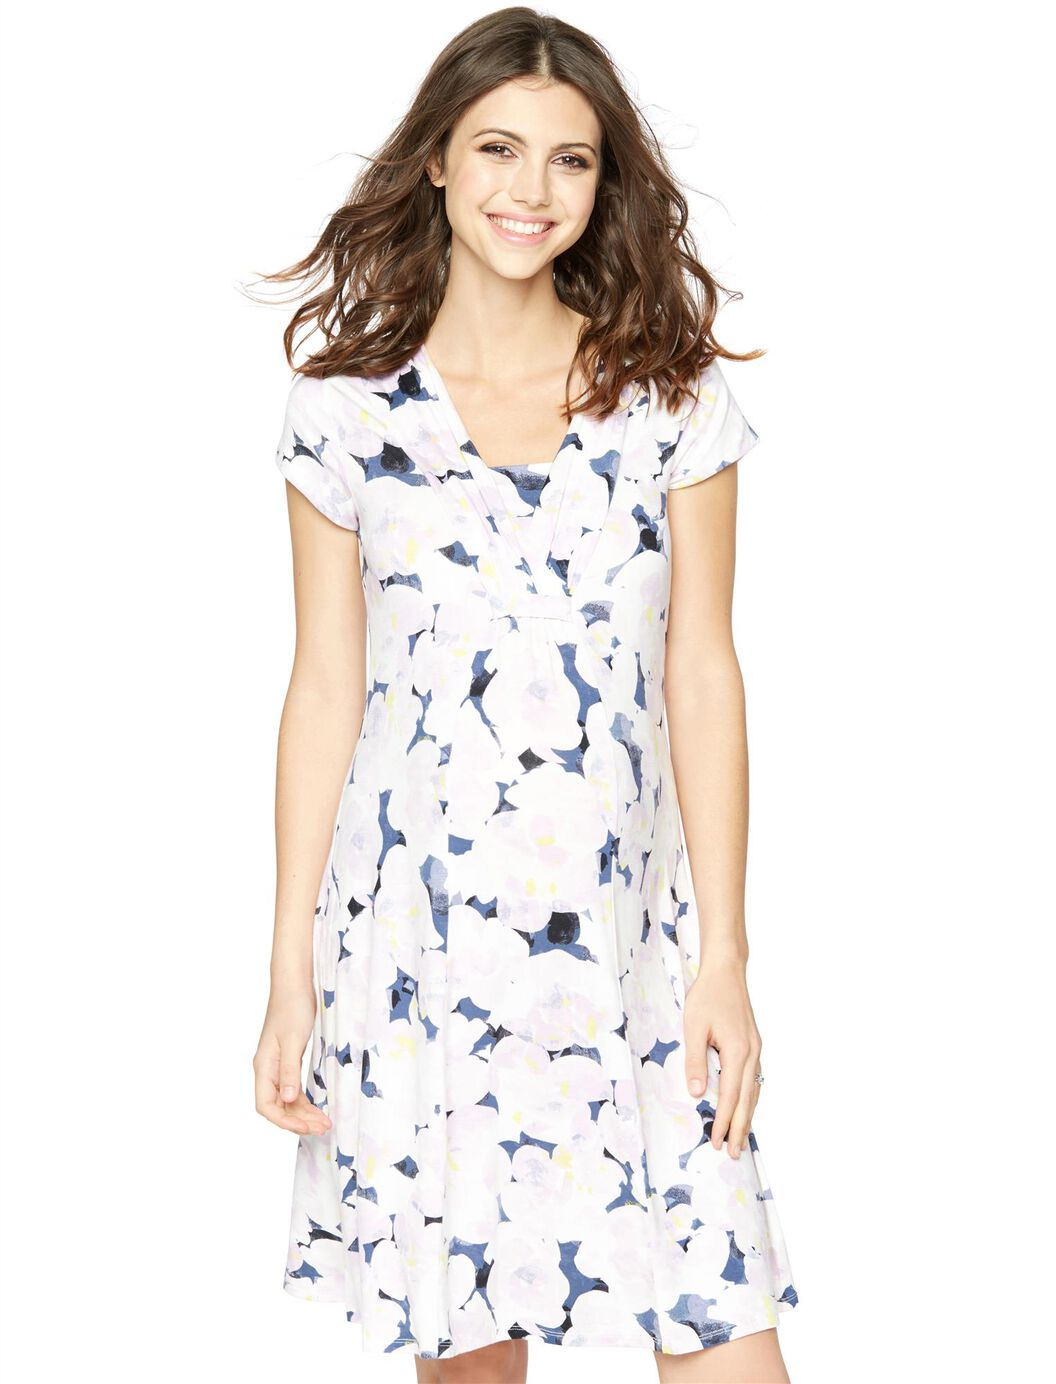 Online Dress Boutique. Since Pink Lily incorporates the latest fashion trends and designs into our online dress boutique experience, we have a massive selection of dresses for .